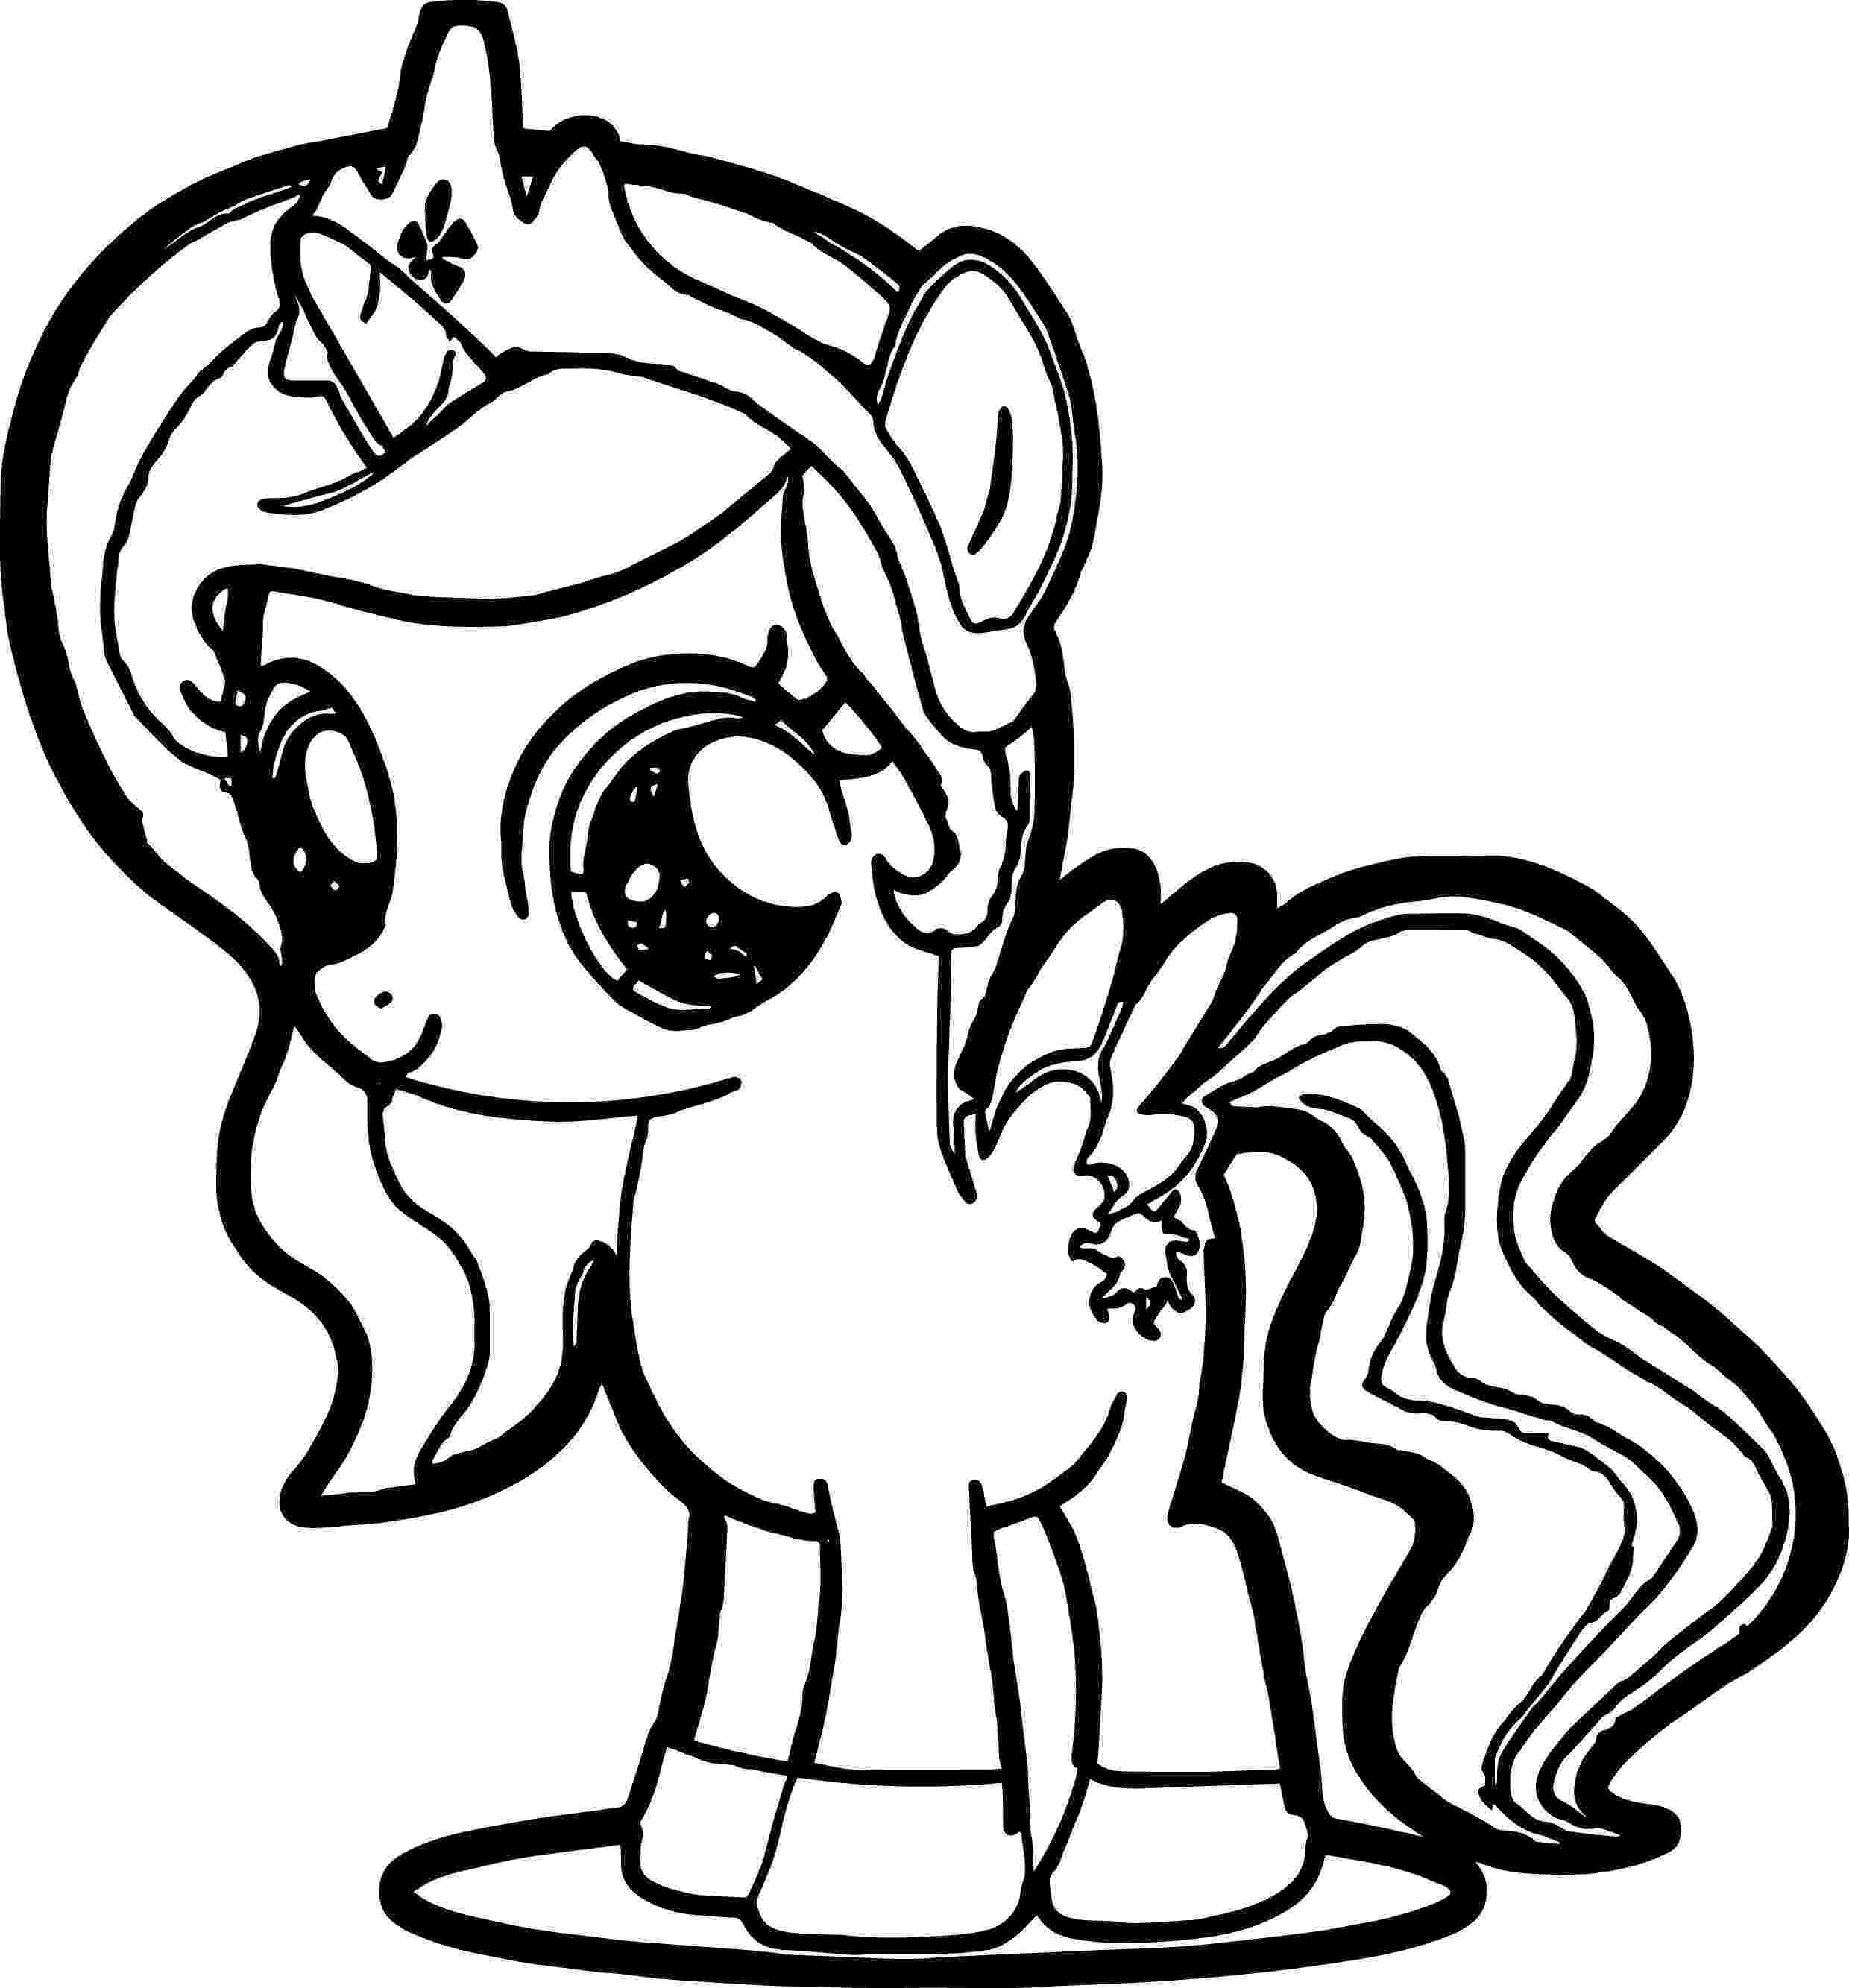 my little pony coloring images my little pony coloring printables get coloring pages my coloring images little pony